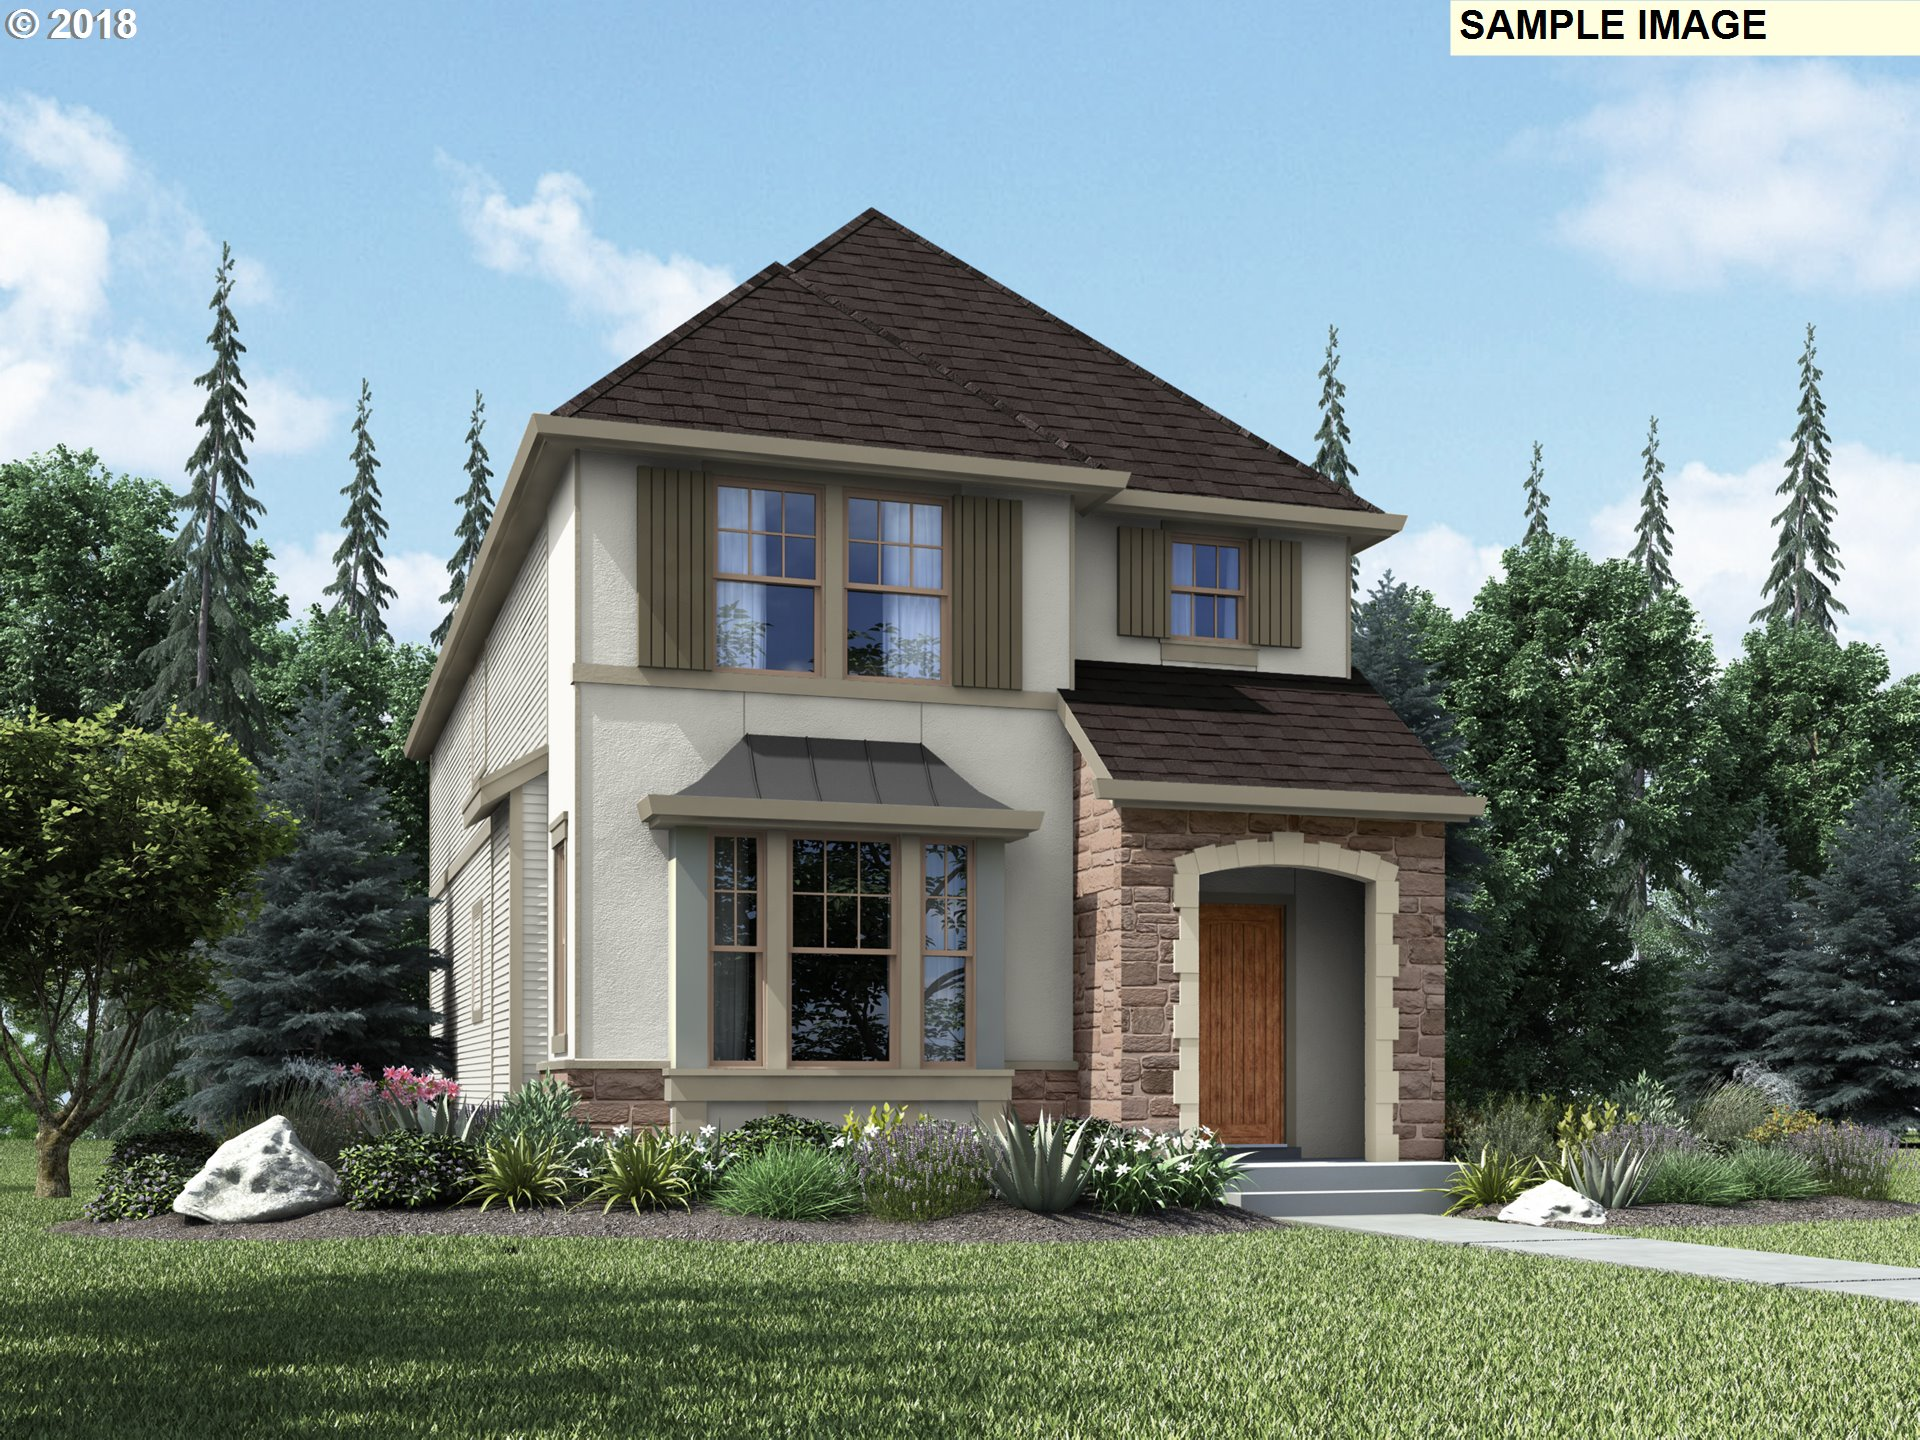 Brand New Master Planned Community! Gourmet kitchen with slab granite island, hardwood floors, & stainless appliances. Large master suite w/ walk-in closet. 3 Year Builder Warranty. Pics are model homes at previous communities. Brand new finish options! French Exterior on corner lot eta Spring Time